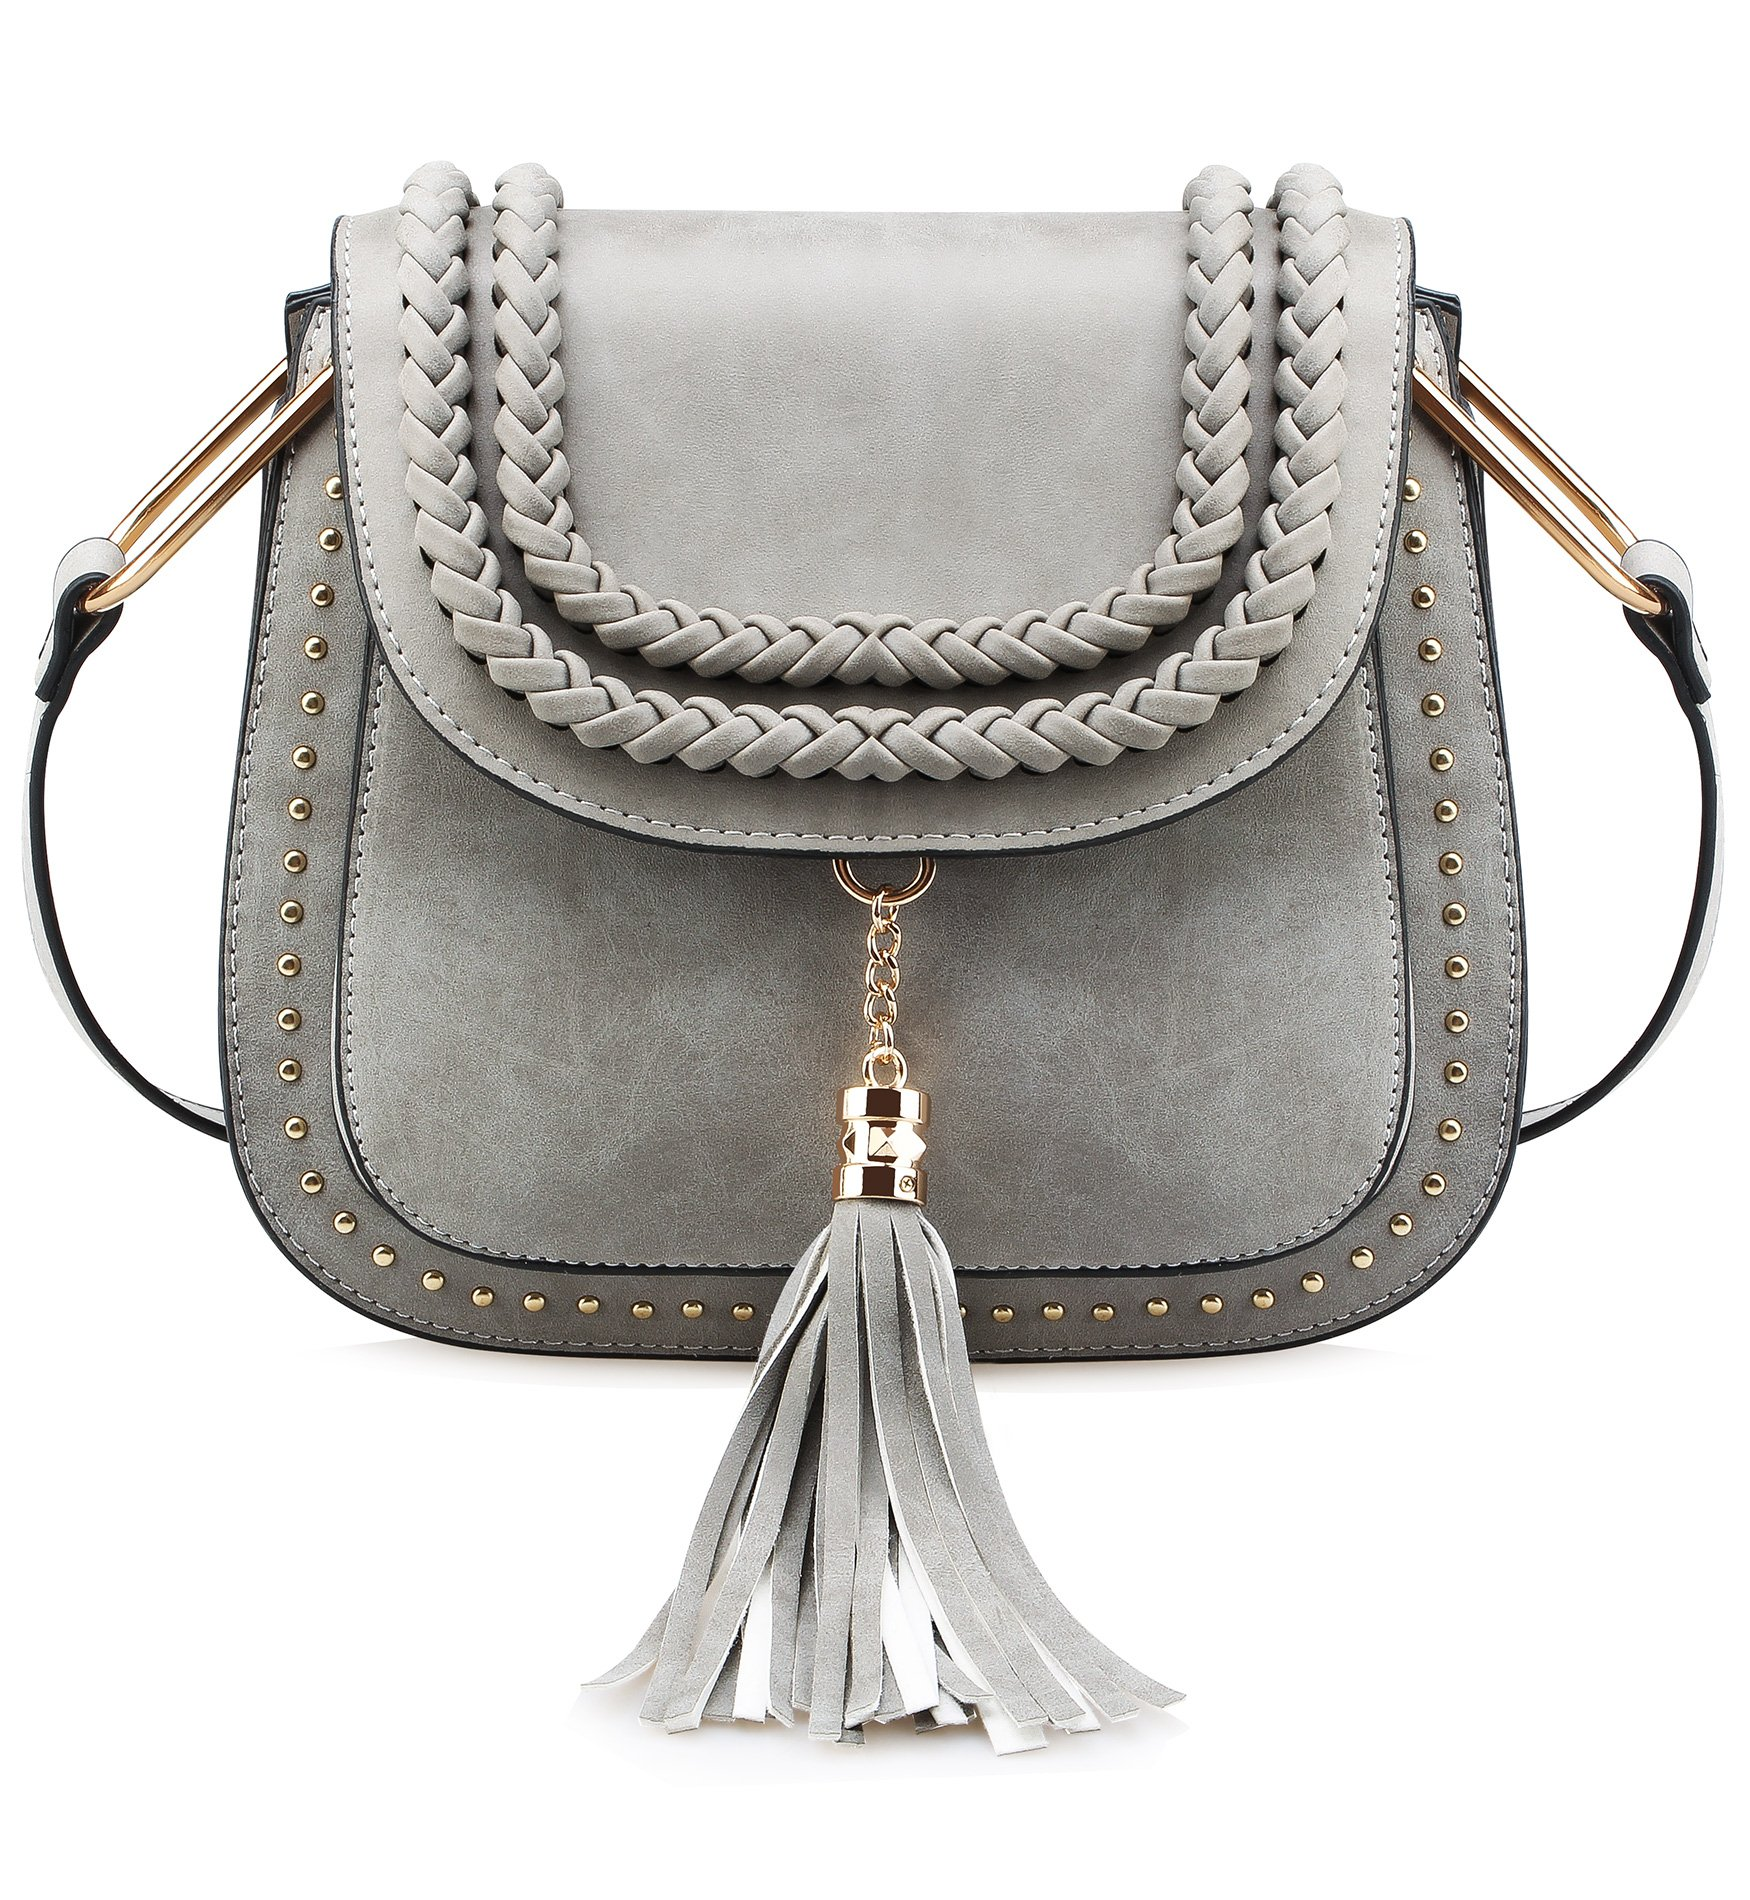 Tom Clovers Womens Vintage Tassel Saddle Shoulder Bag Crossbody Bag Sling Bag Shopping Travel Satchel Grey